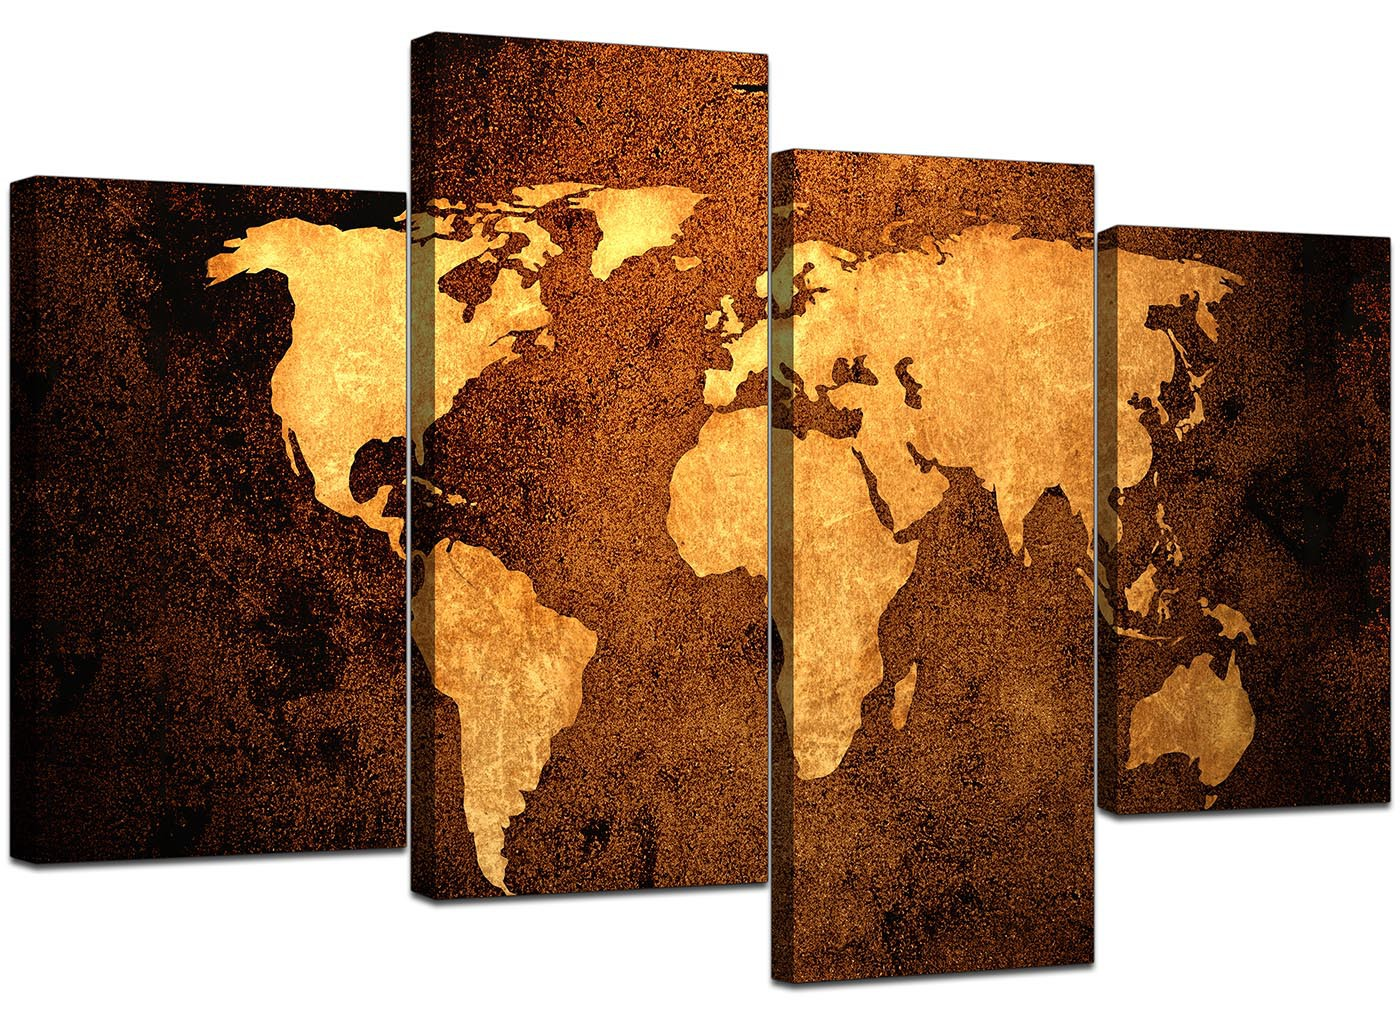 Old World Map Canvas.Old World Map Brown Cream Canvas